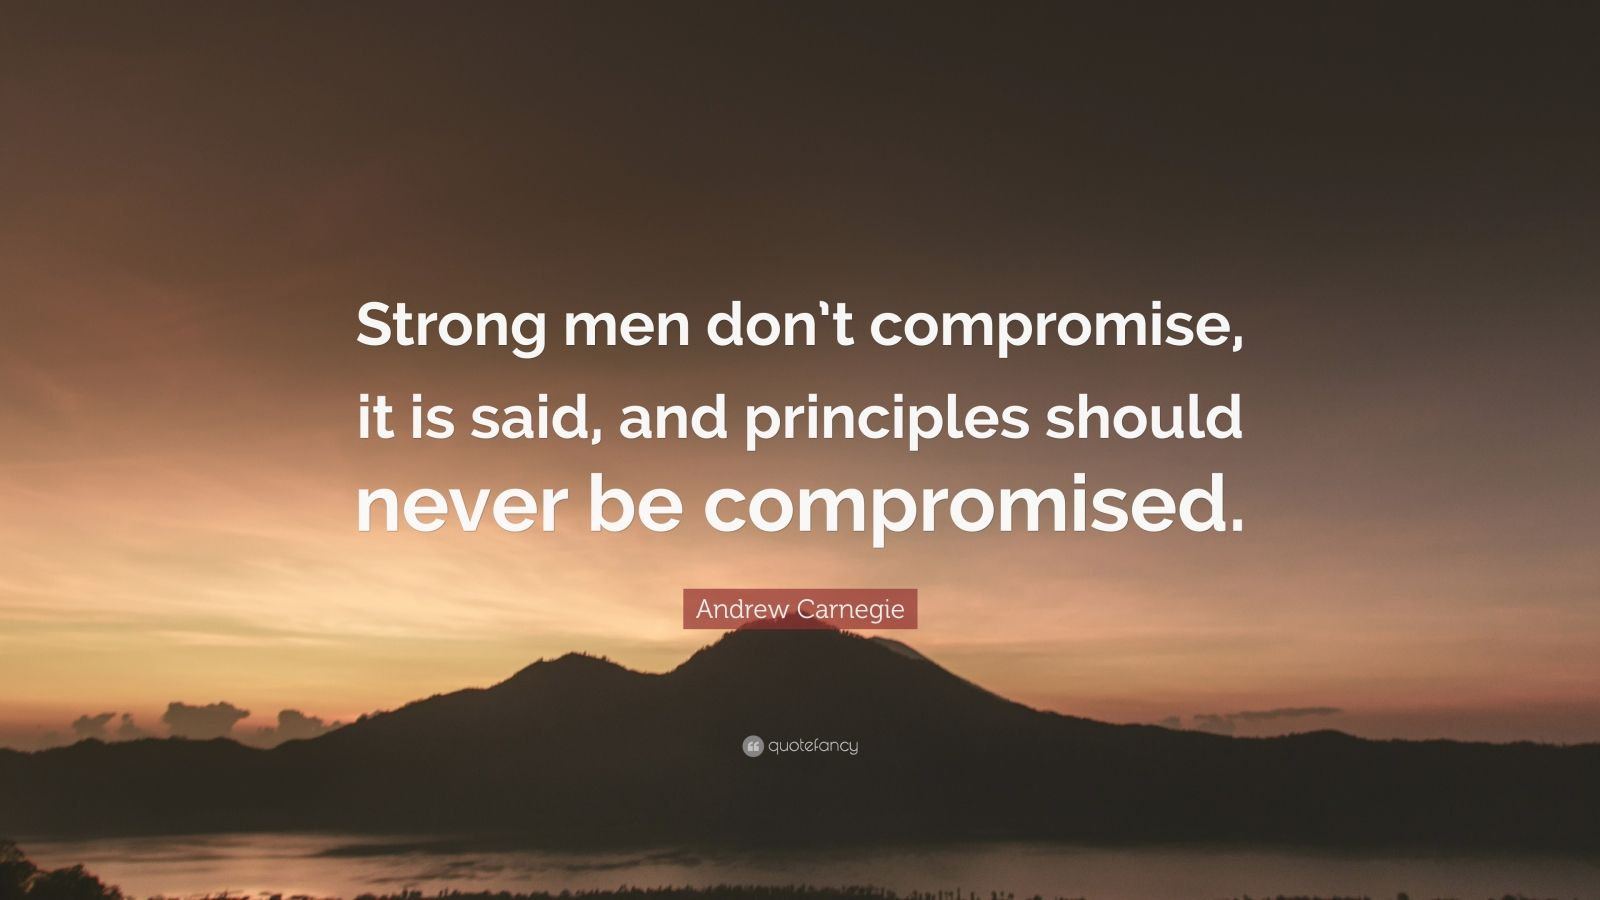 """Andrew Carnegie Quote: """"Strong men don't compromise, it is said, and principles should never be compromised."""""""